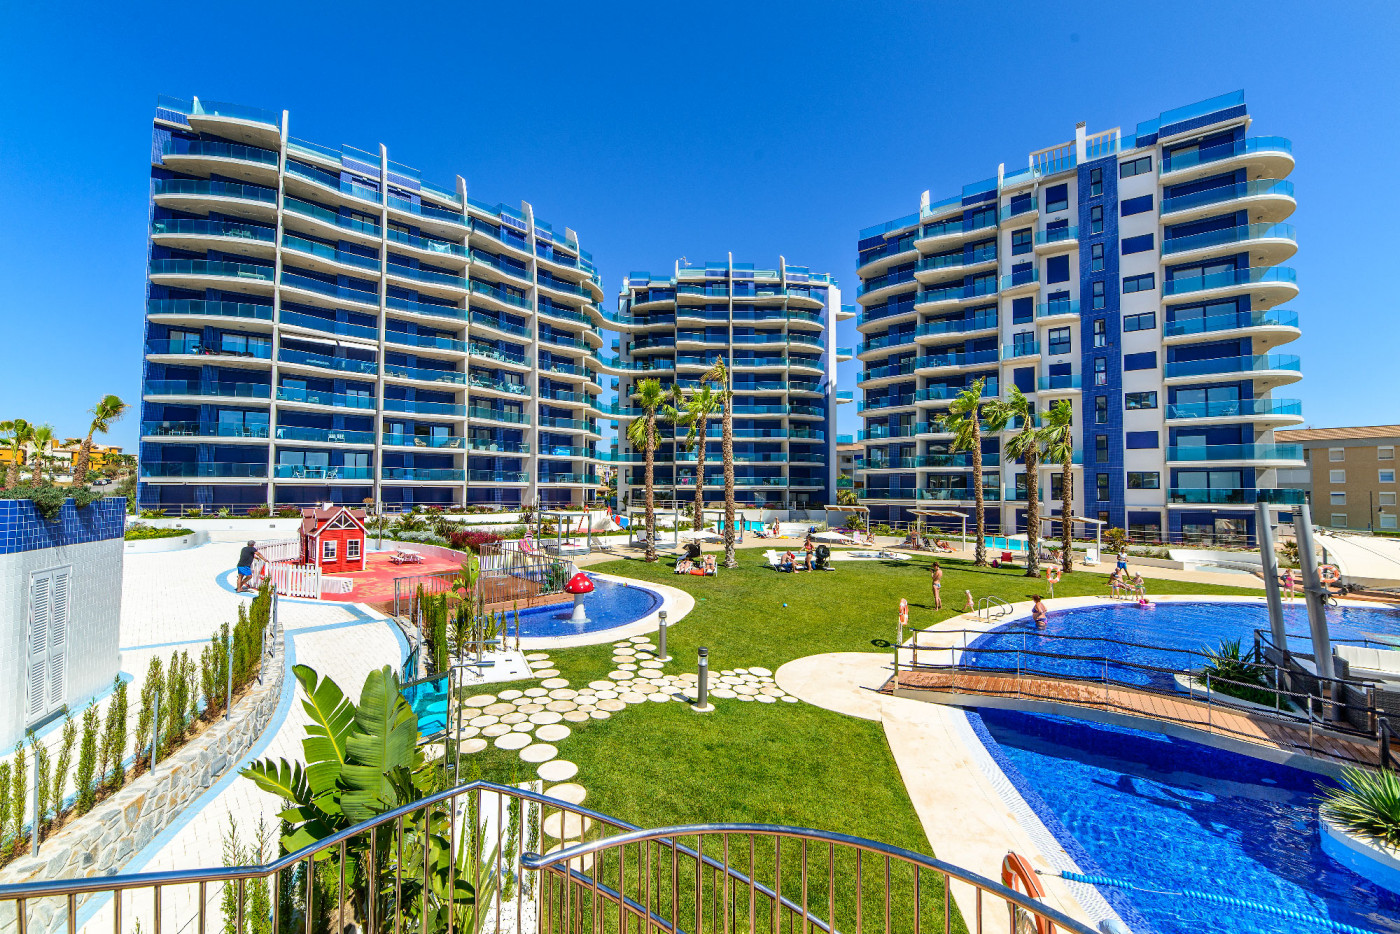 Apartment for sale in Punta prima, Torrevieja